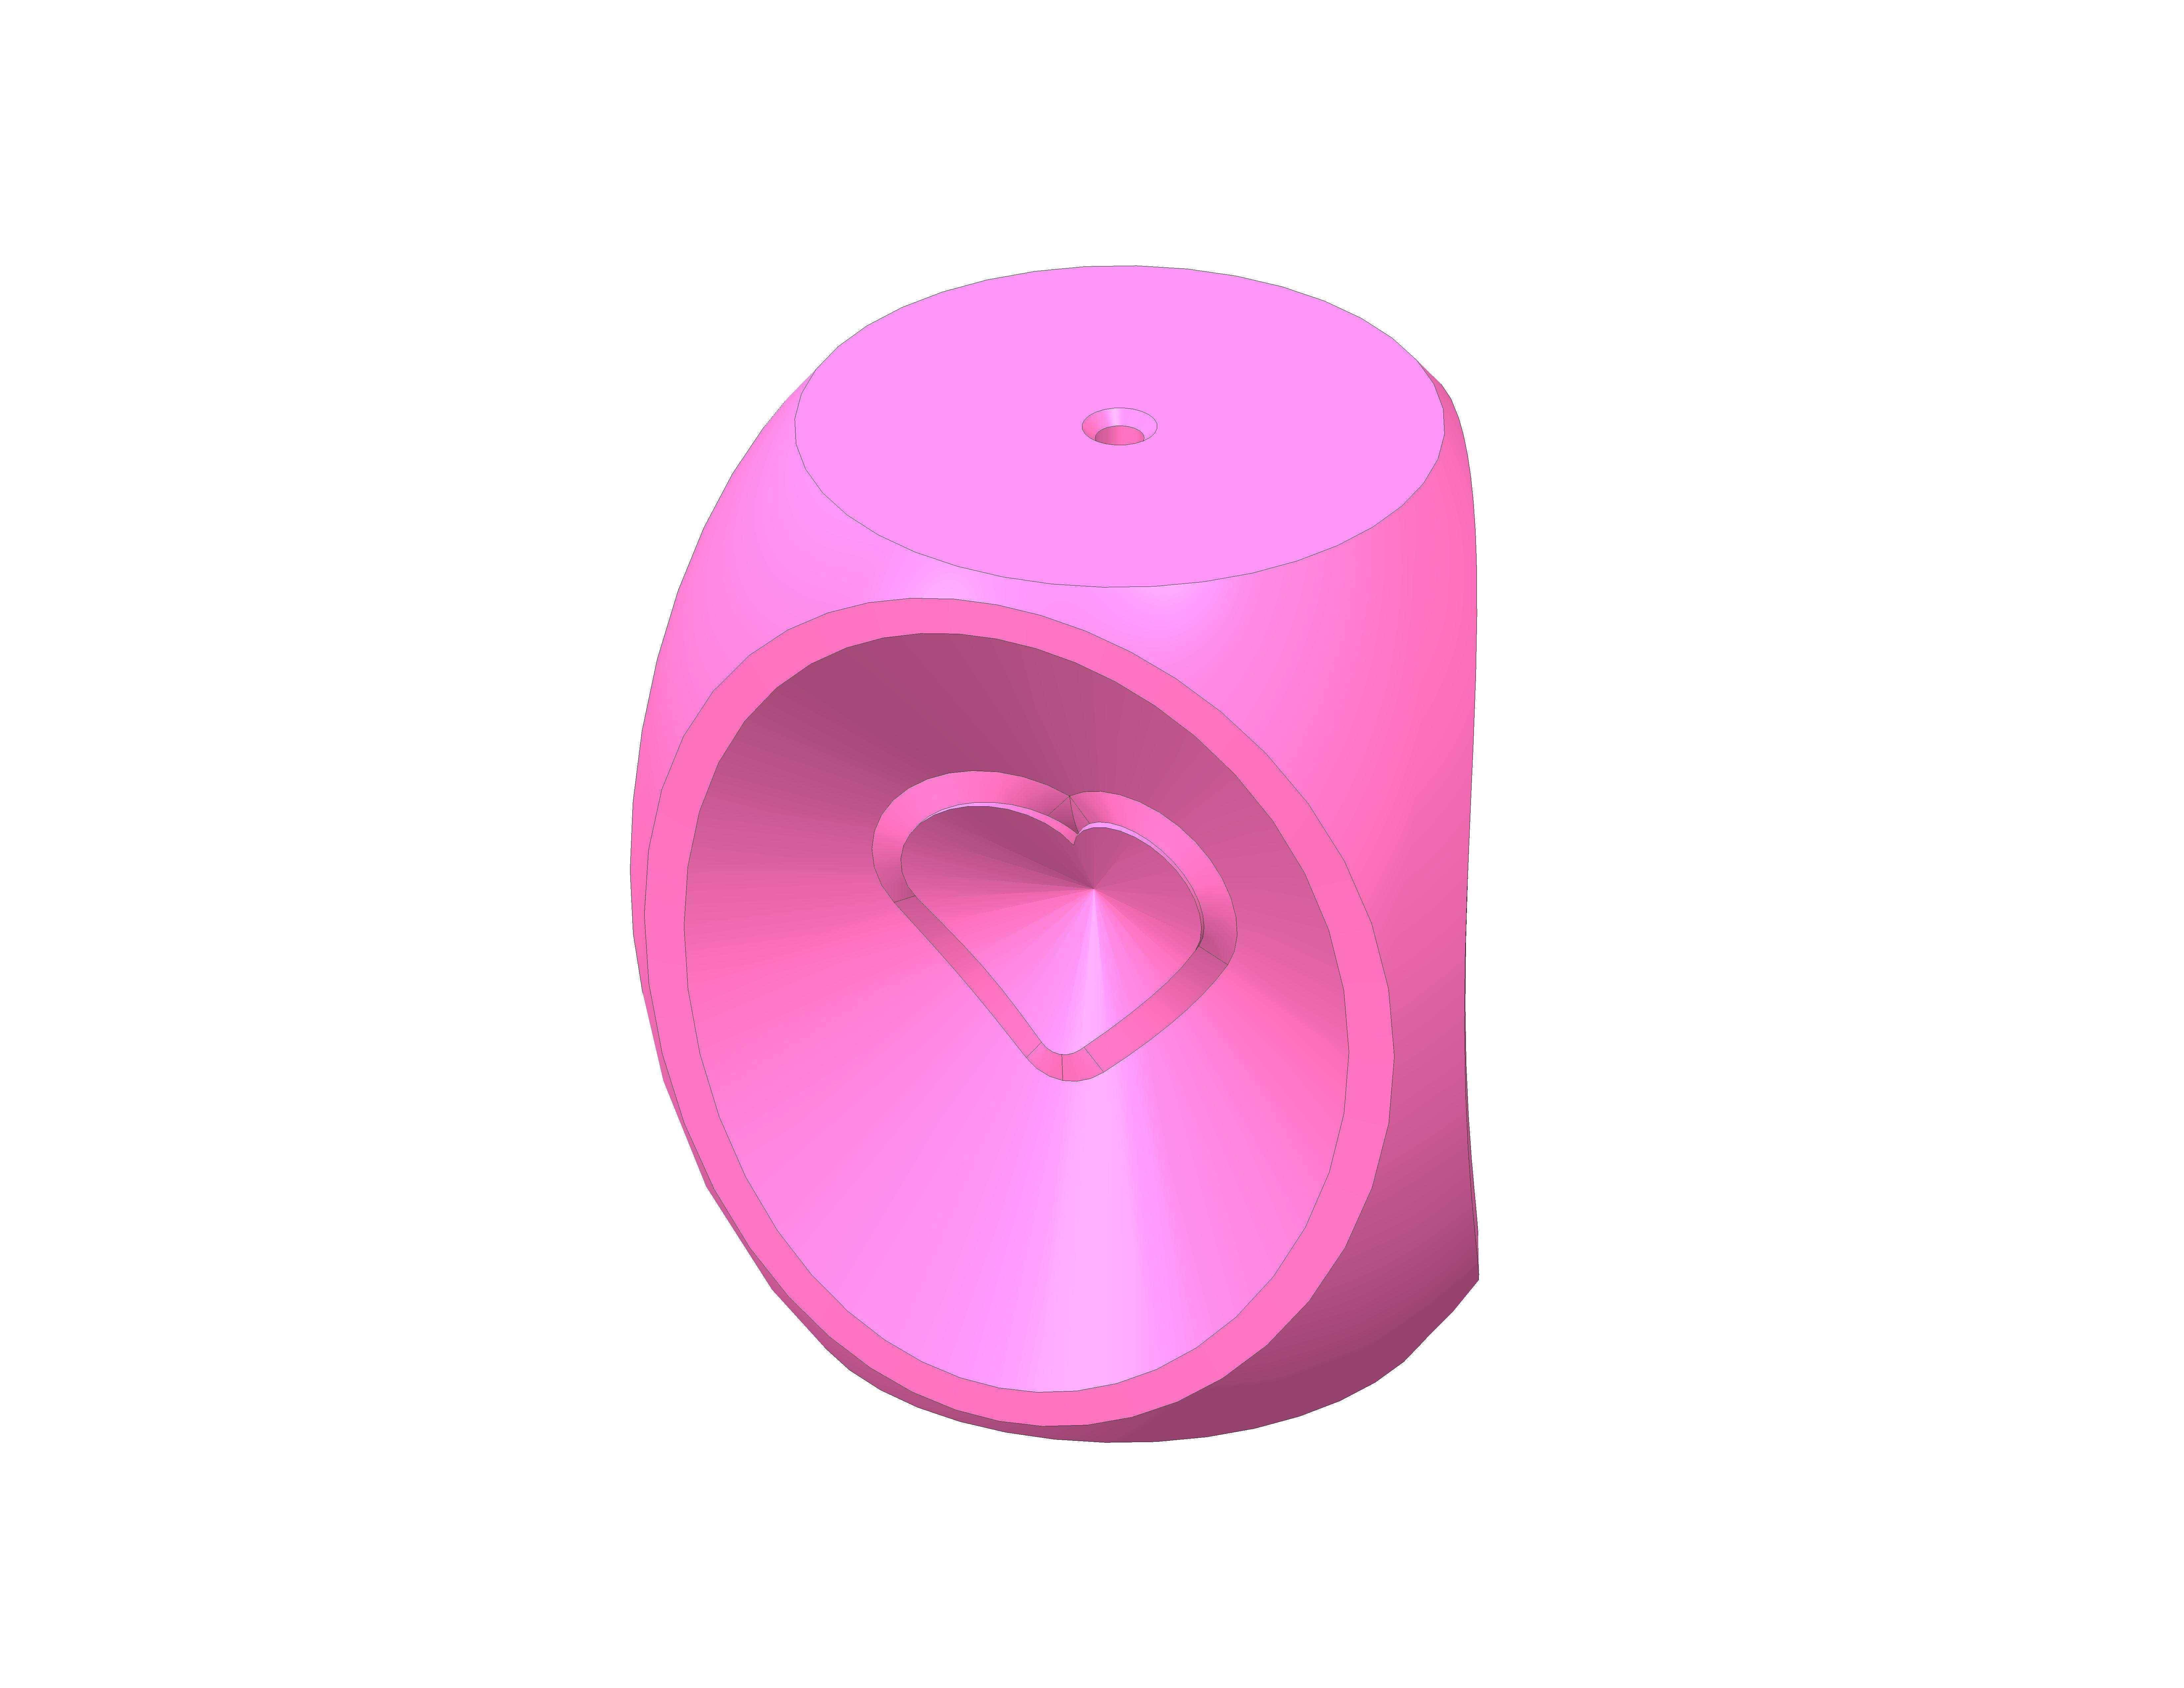 plp-coeur-serre-1-.jpg Download free STL file PLP COREUR TIGHT 1 • Design to 3D print, PLP